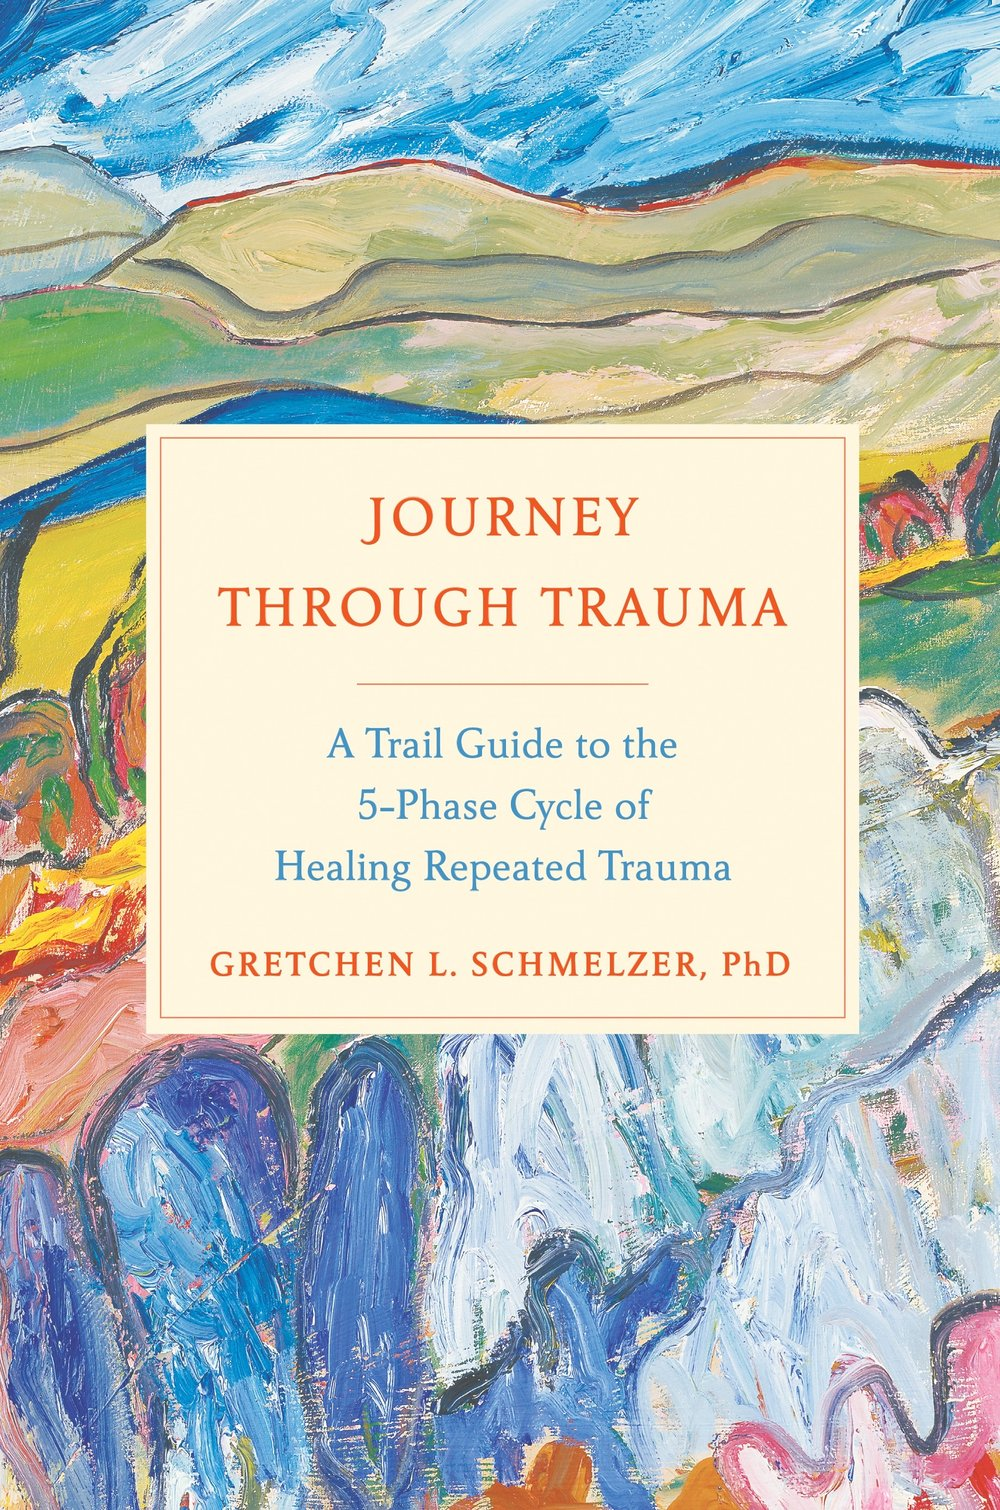 Journey Through Trauma jacket (1).jpg